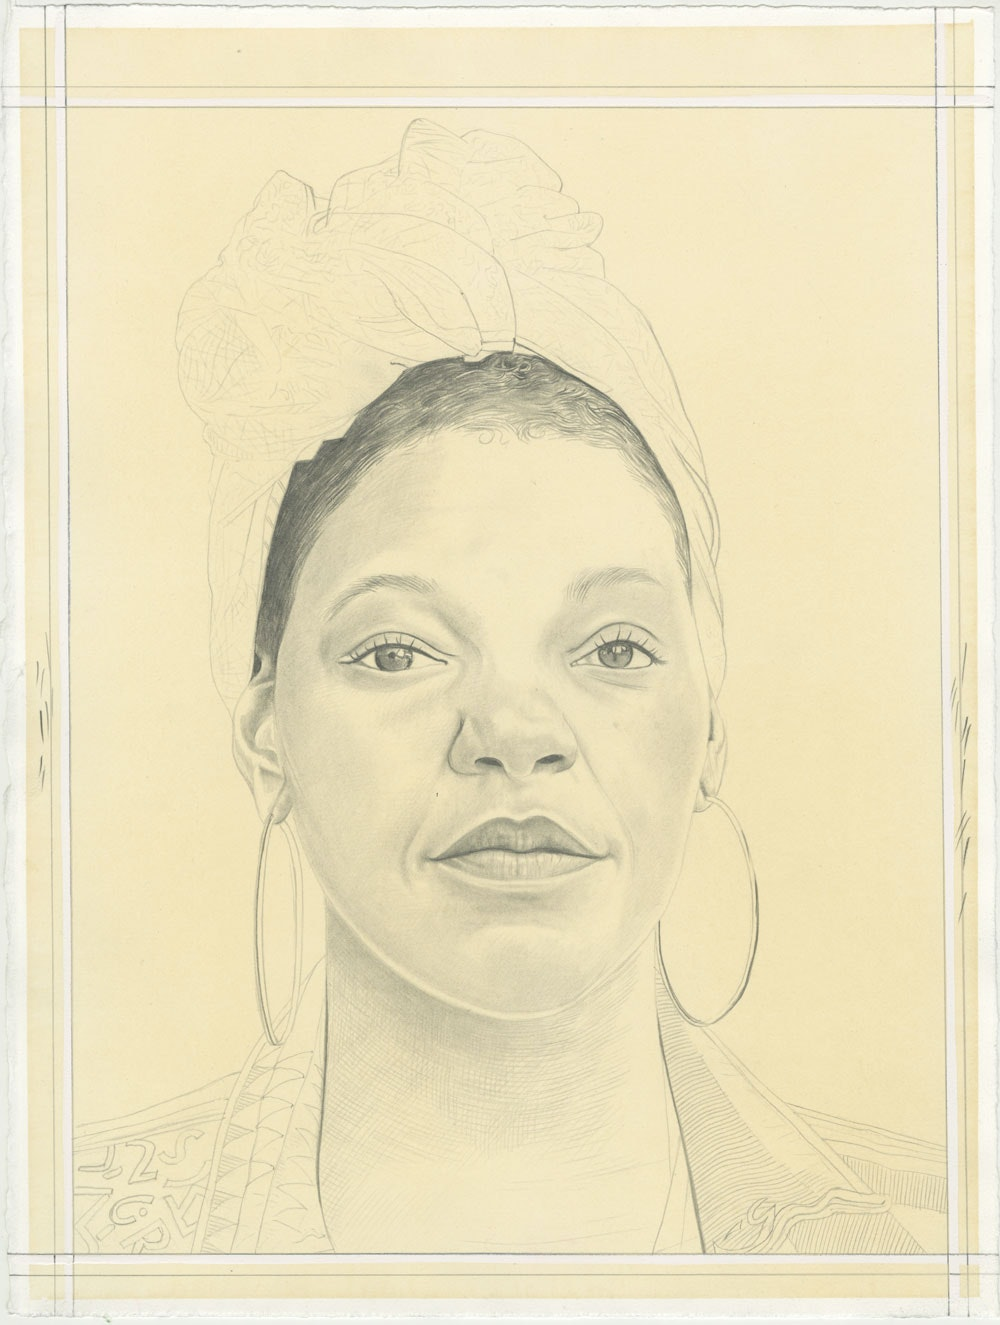 Mahogany L. Browne, pencil on paper by Phong H. Bui.